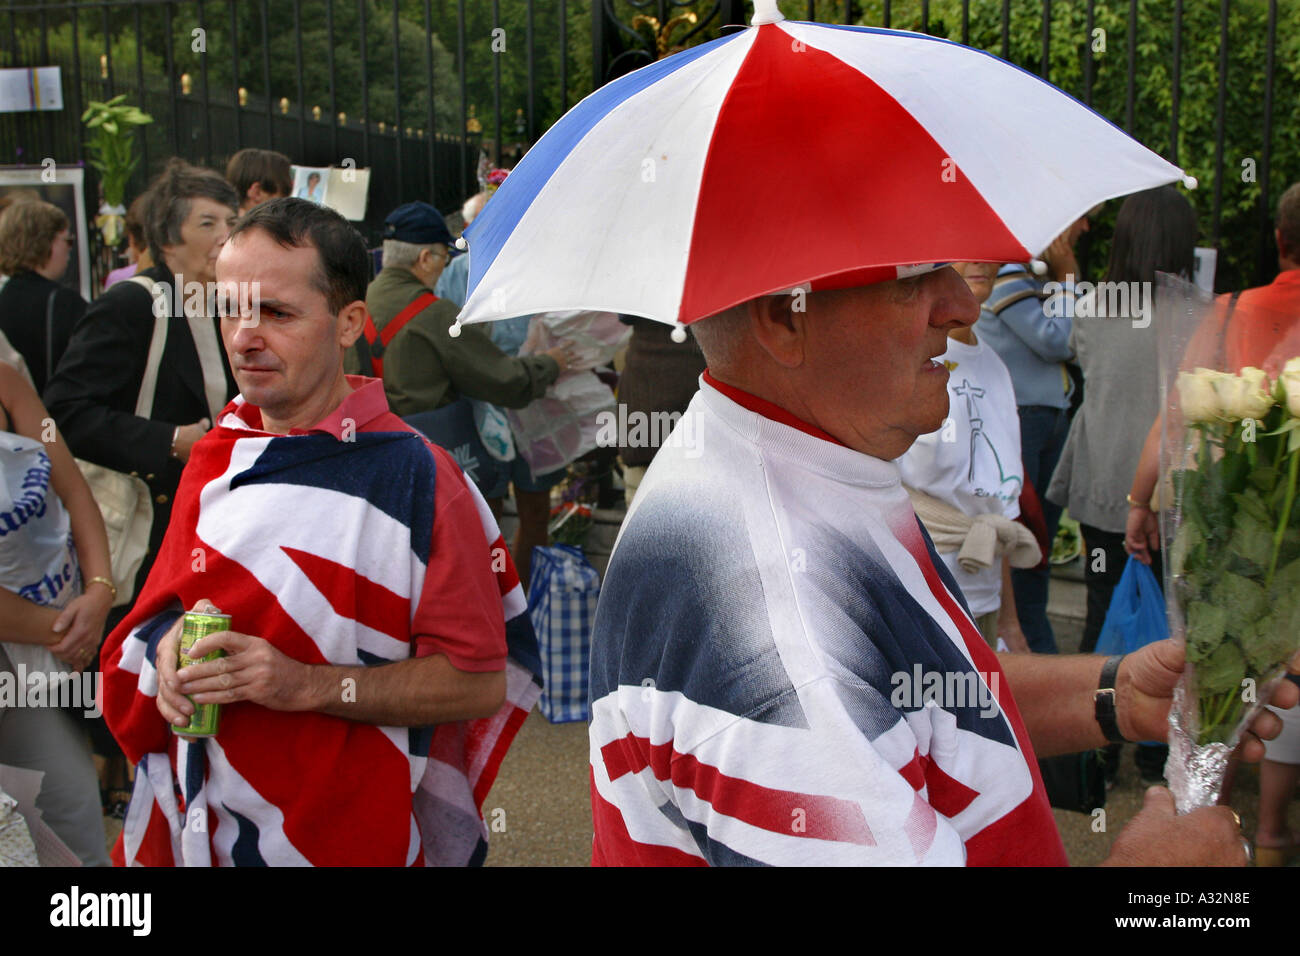 men dressed in union jack clothing mourning death of princess diana - Stock Image